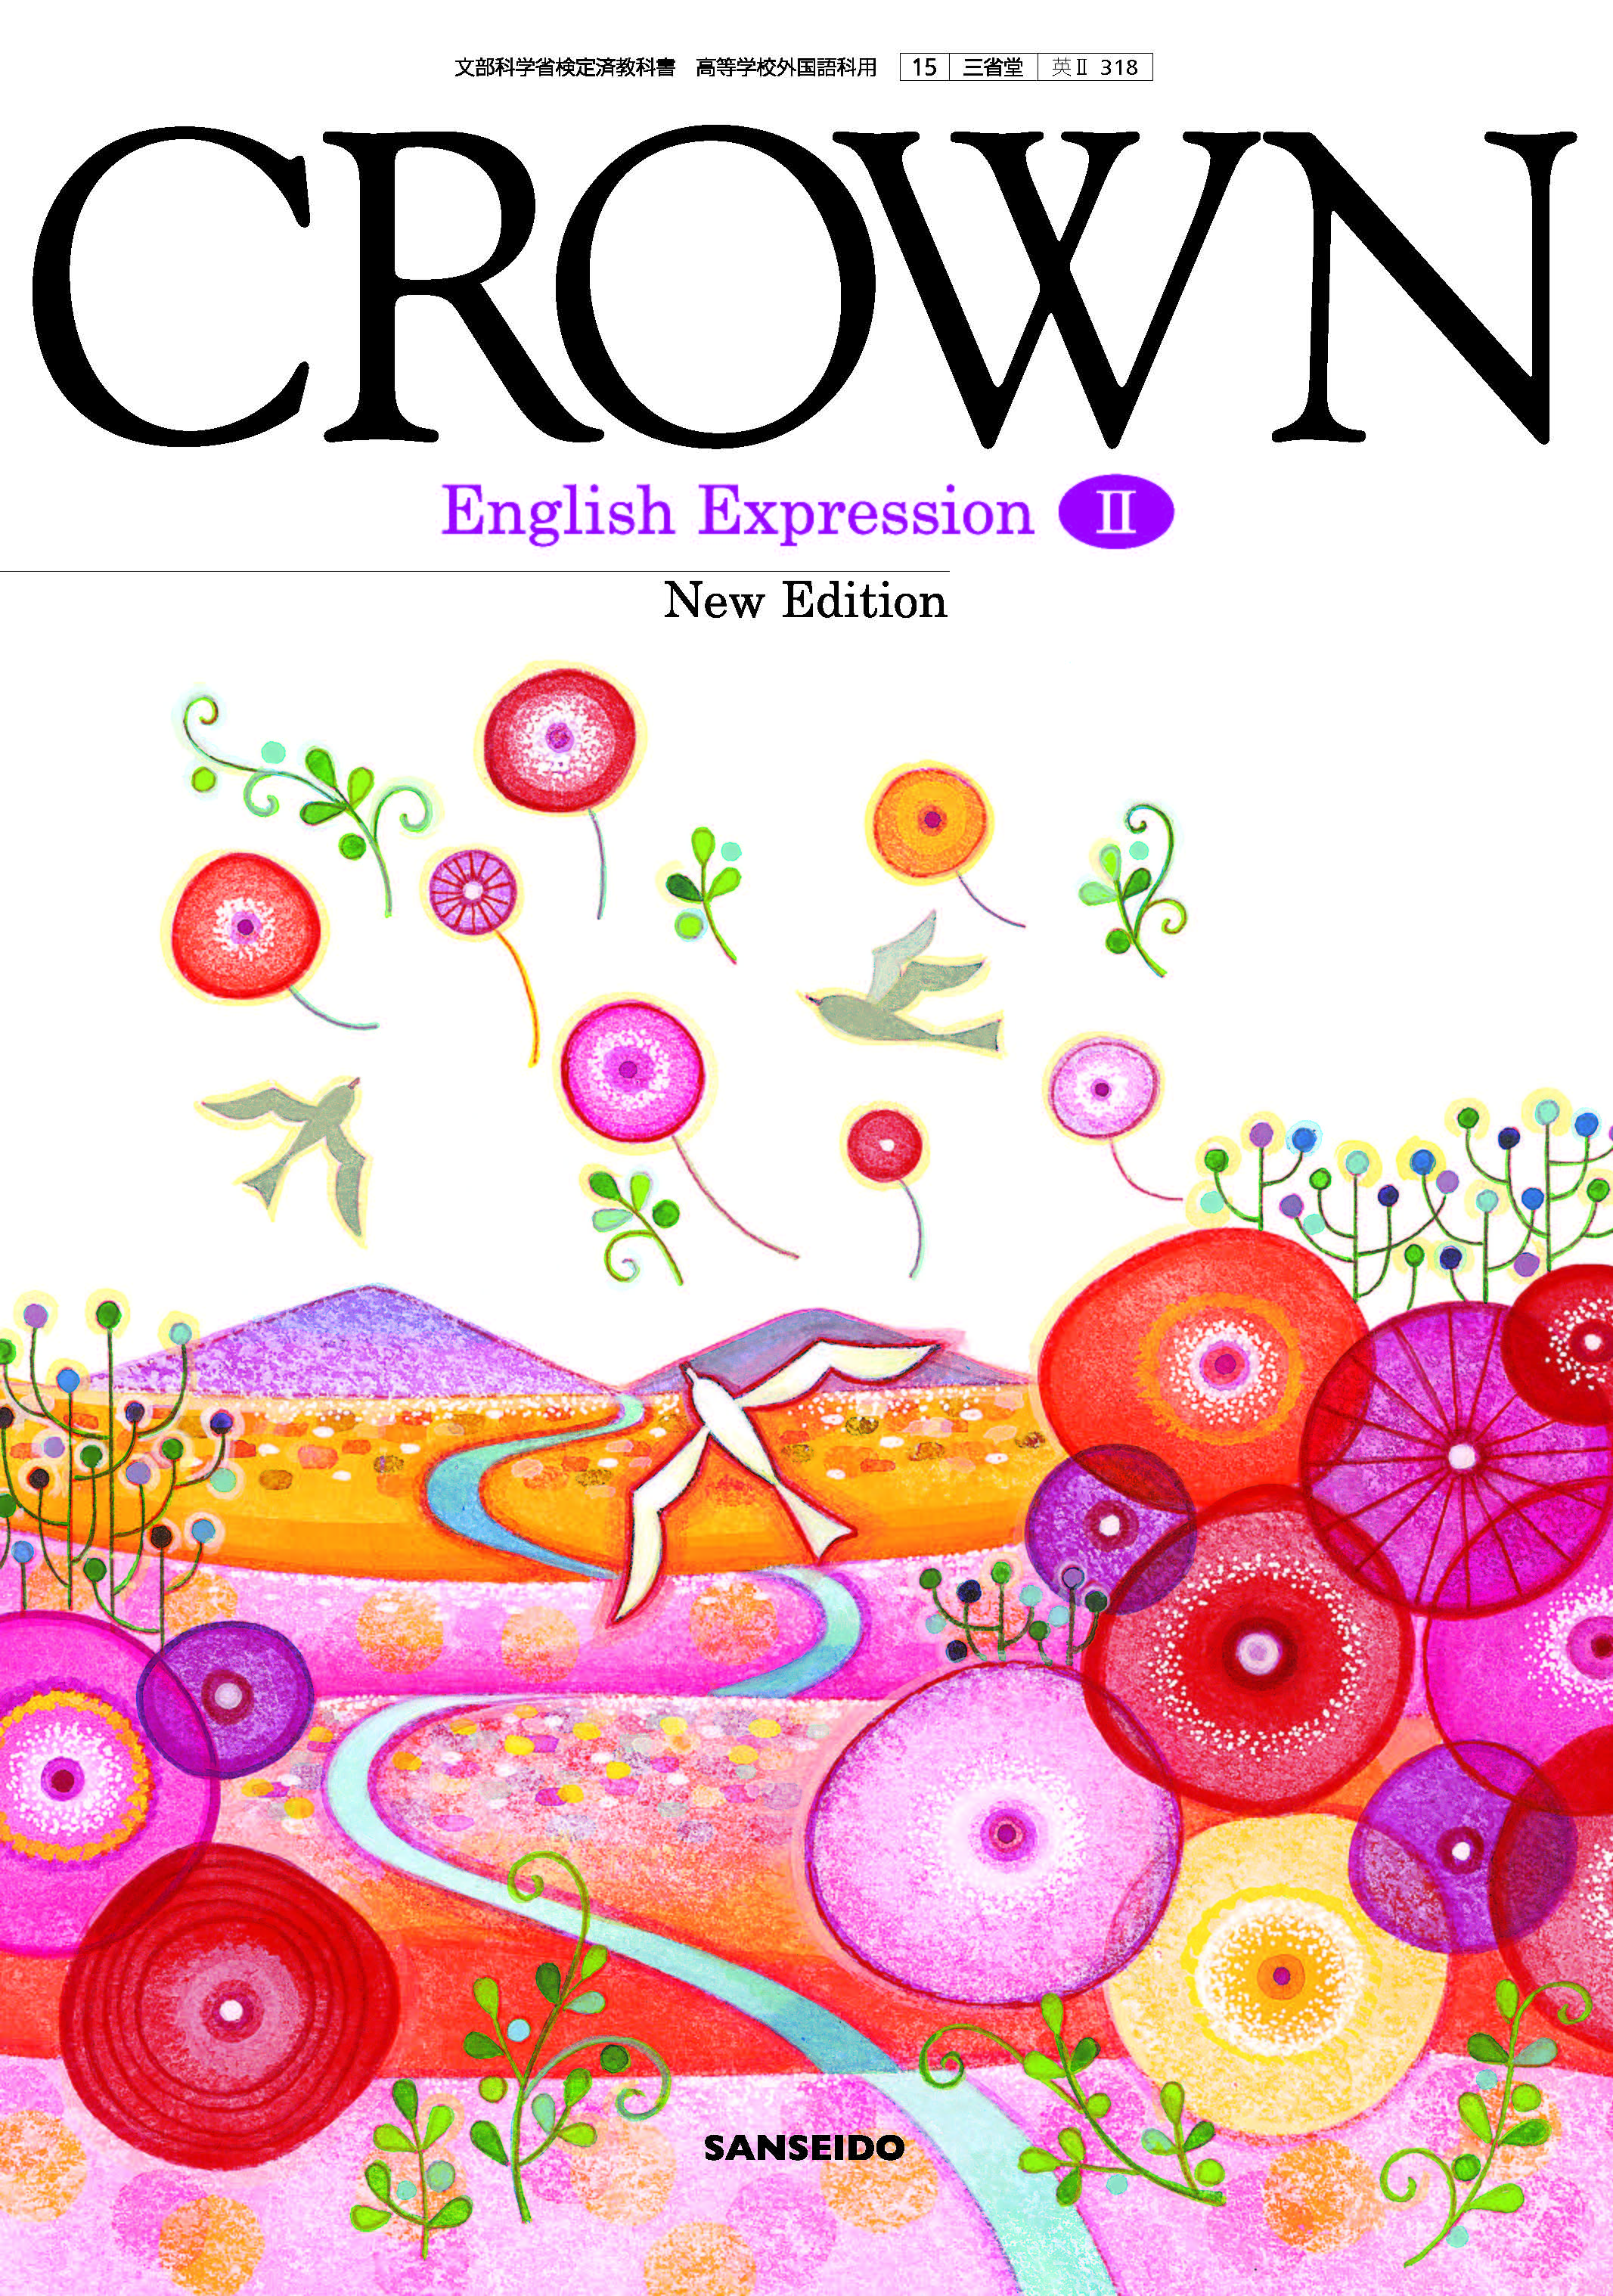 CROWN English ExpressionⅠ New Edition